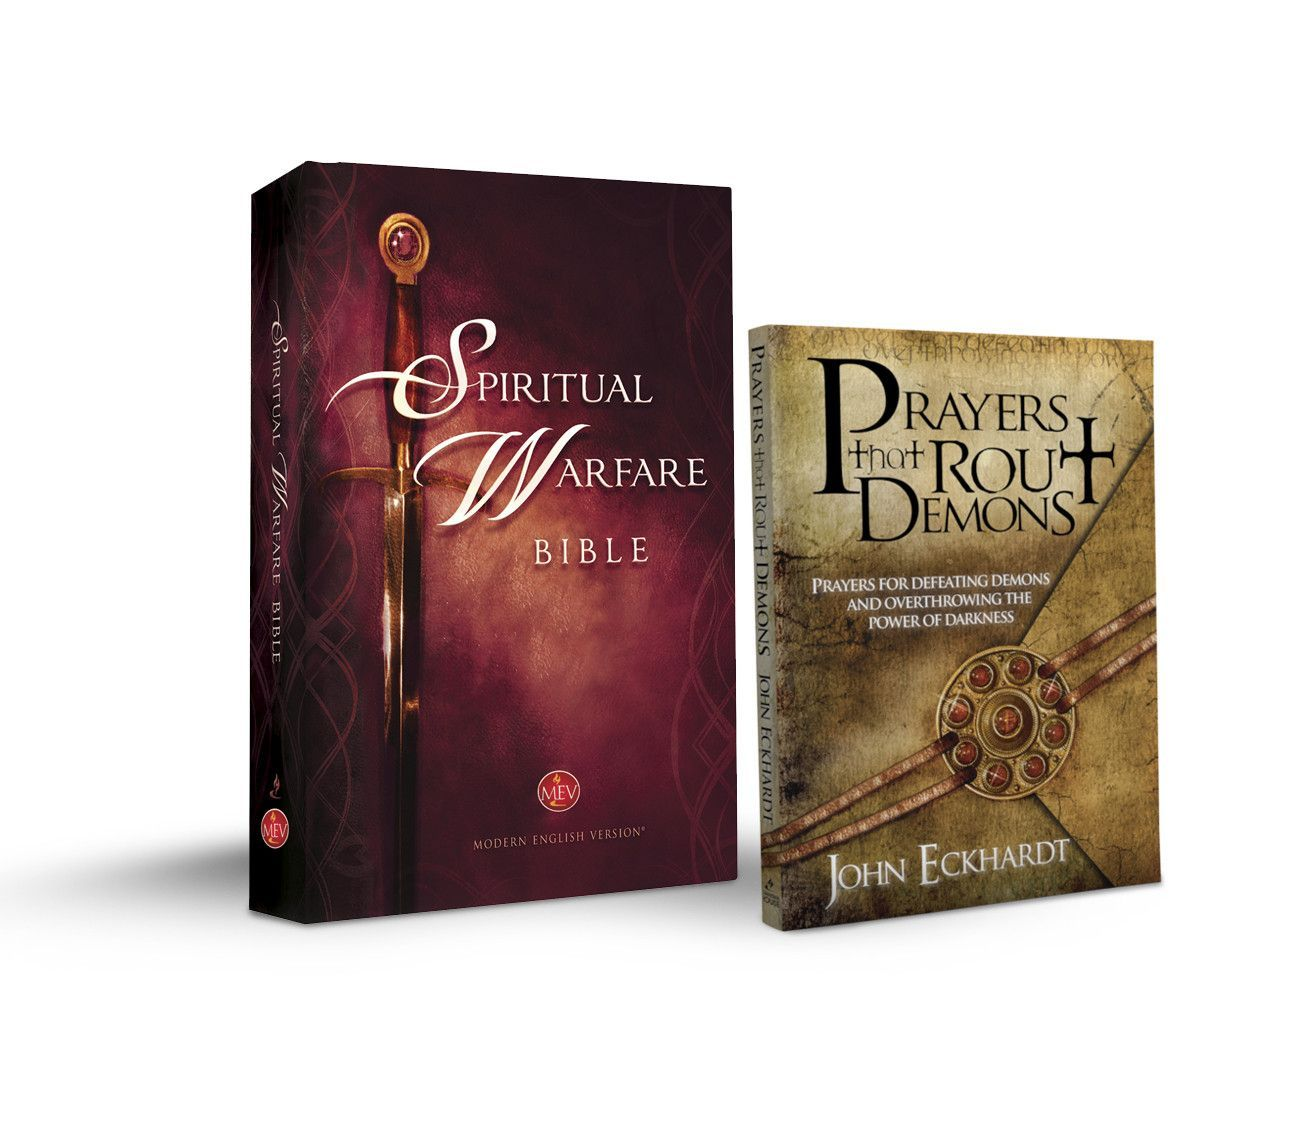 spiritual warfare bible hardcover with free 'prayers that rout